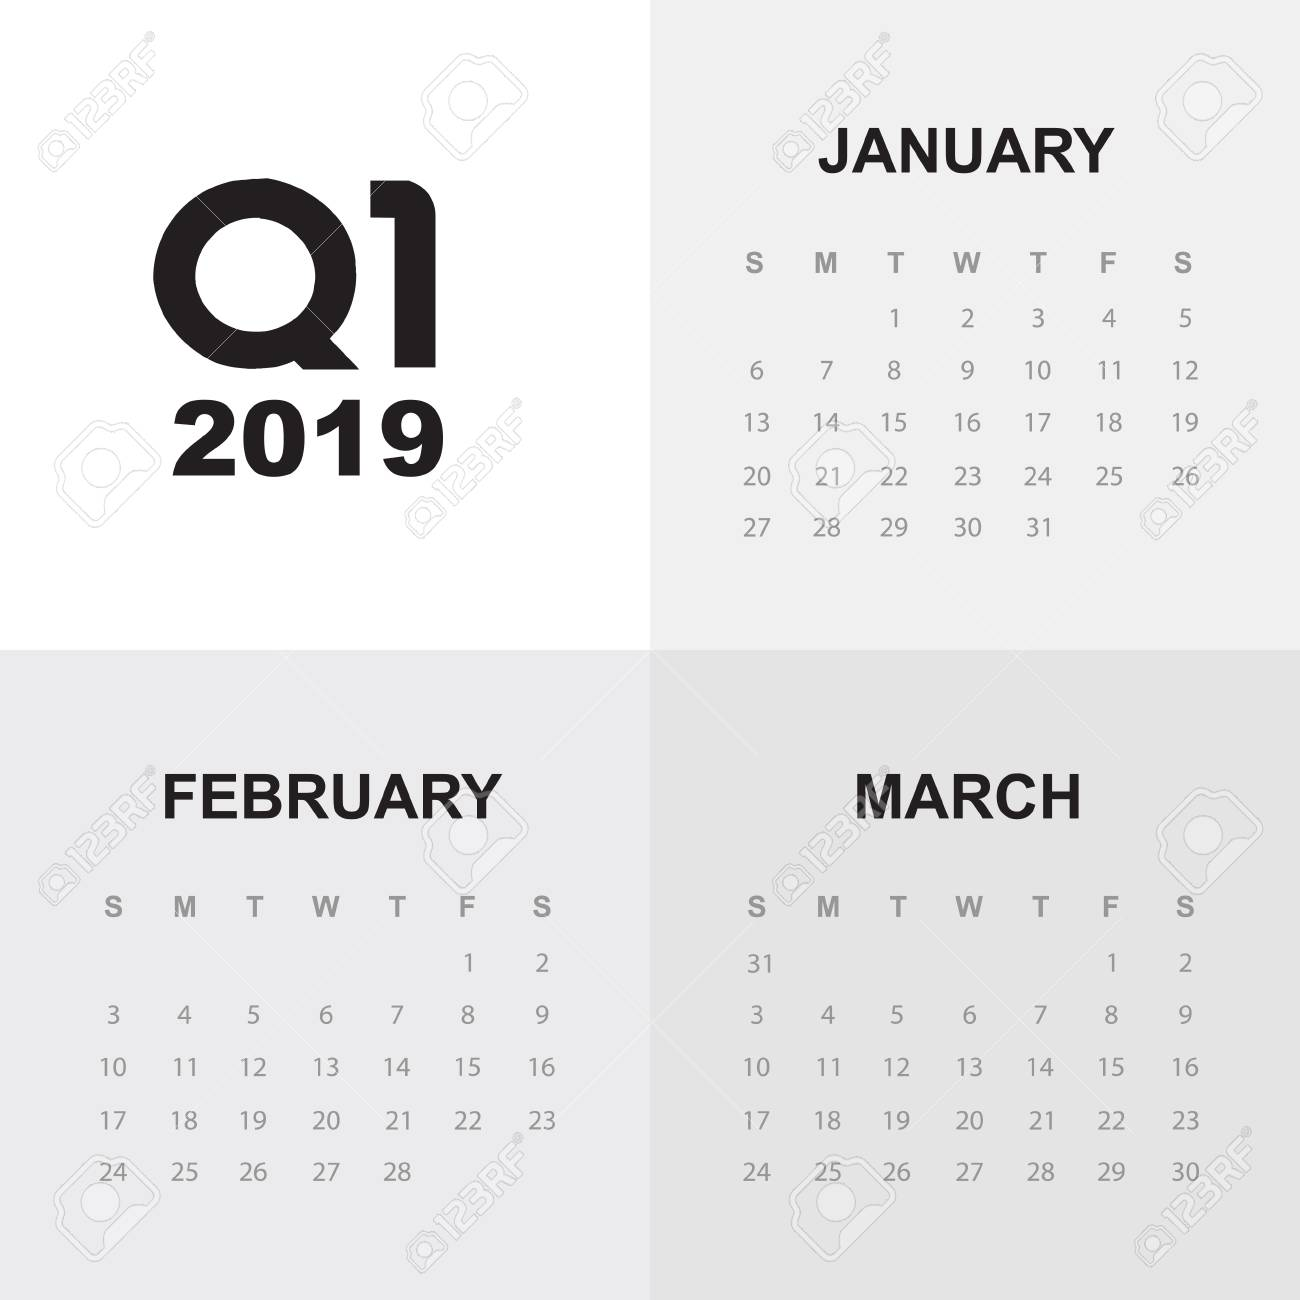 First Quarter Calendar 2019 First Quarter Of Calendar 2019 Royalty Free Cliparts, Vectors, And